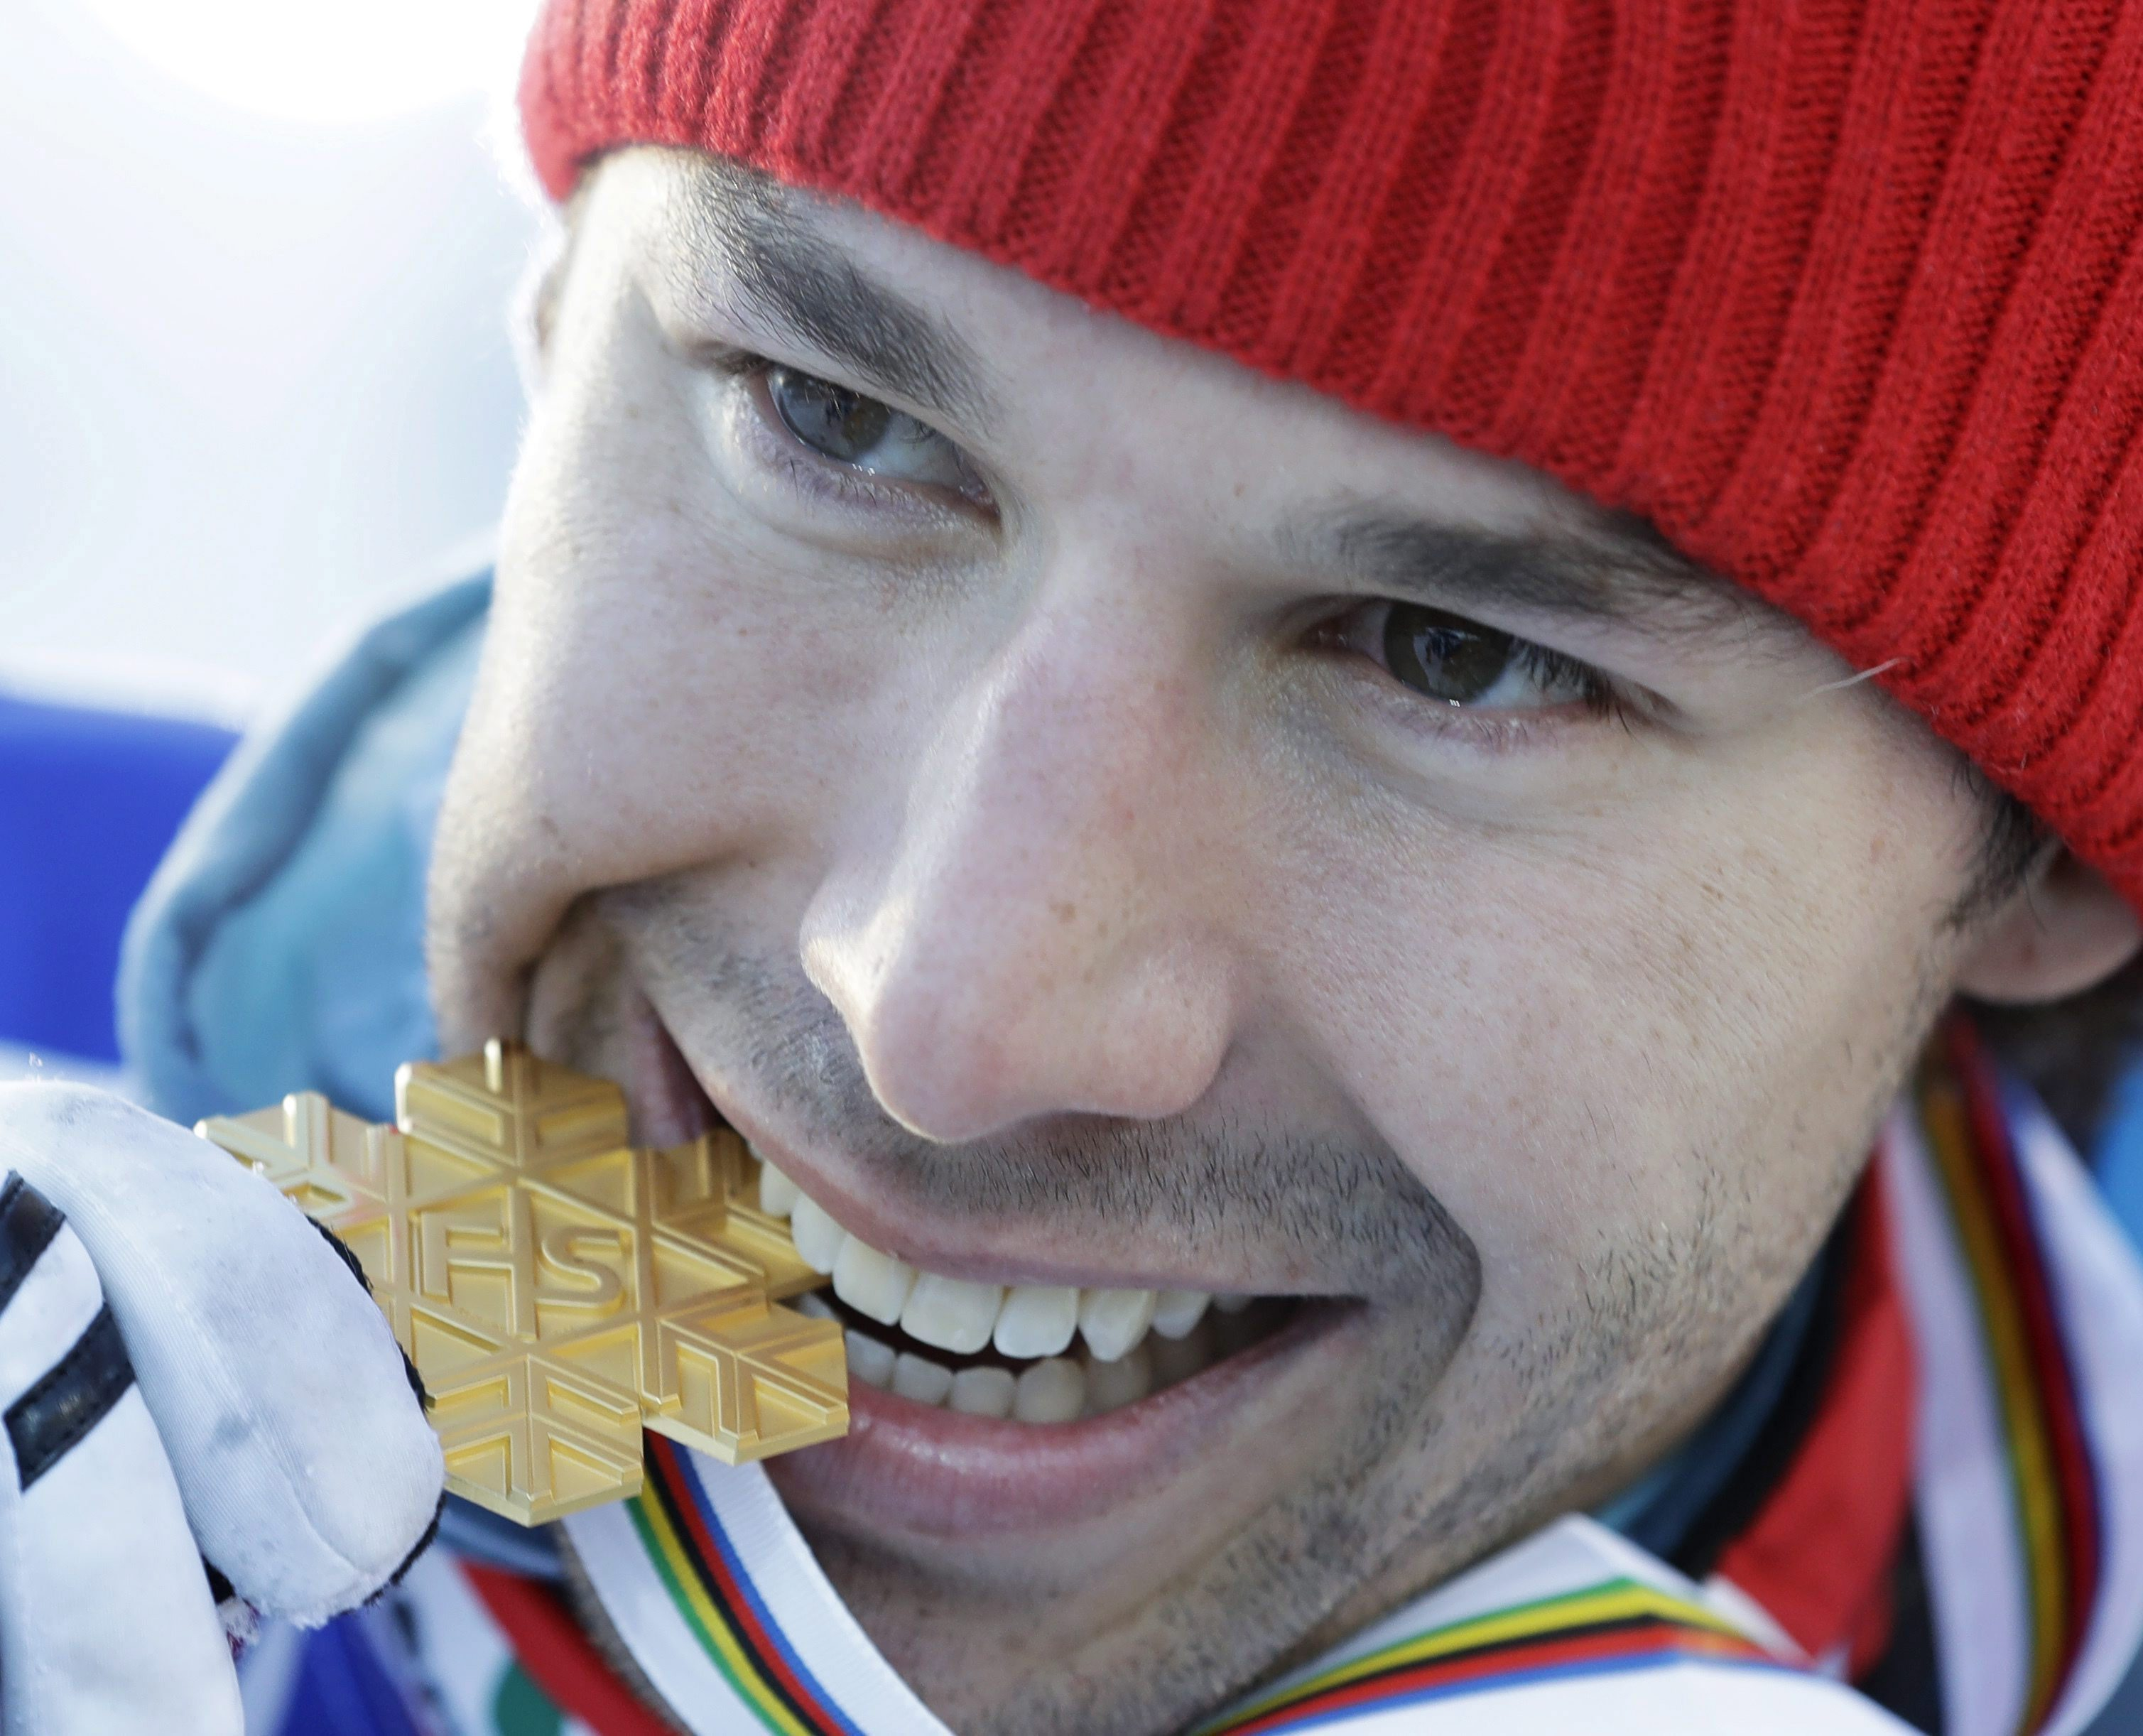 Canada's Alex Harvey bites his gold medal after winning the men's 50 km race during the 2017 Nordic Skiing World Championships in Lahti, Finland, Sunday, March 5, 2017. (AP Photo/Matthias Schrader)